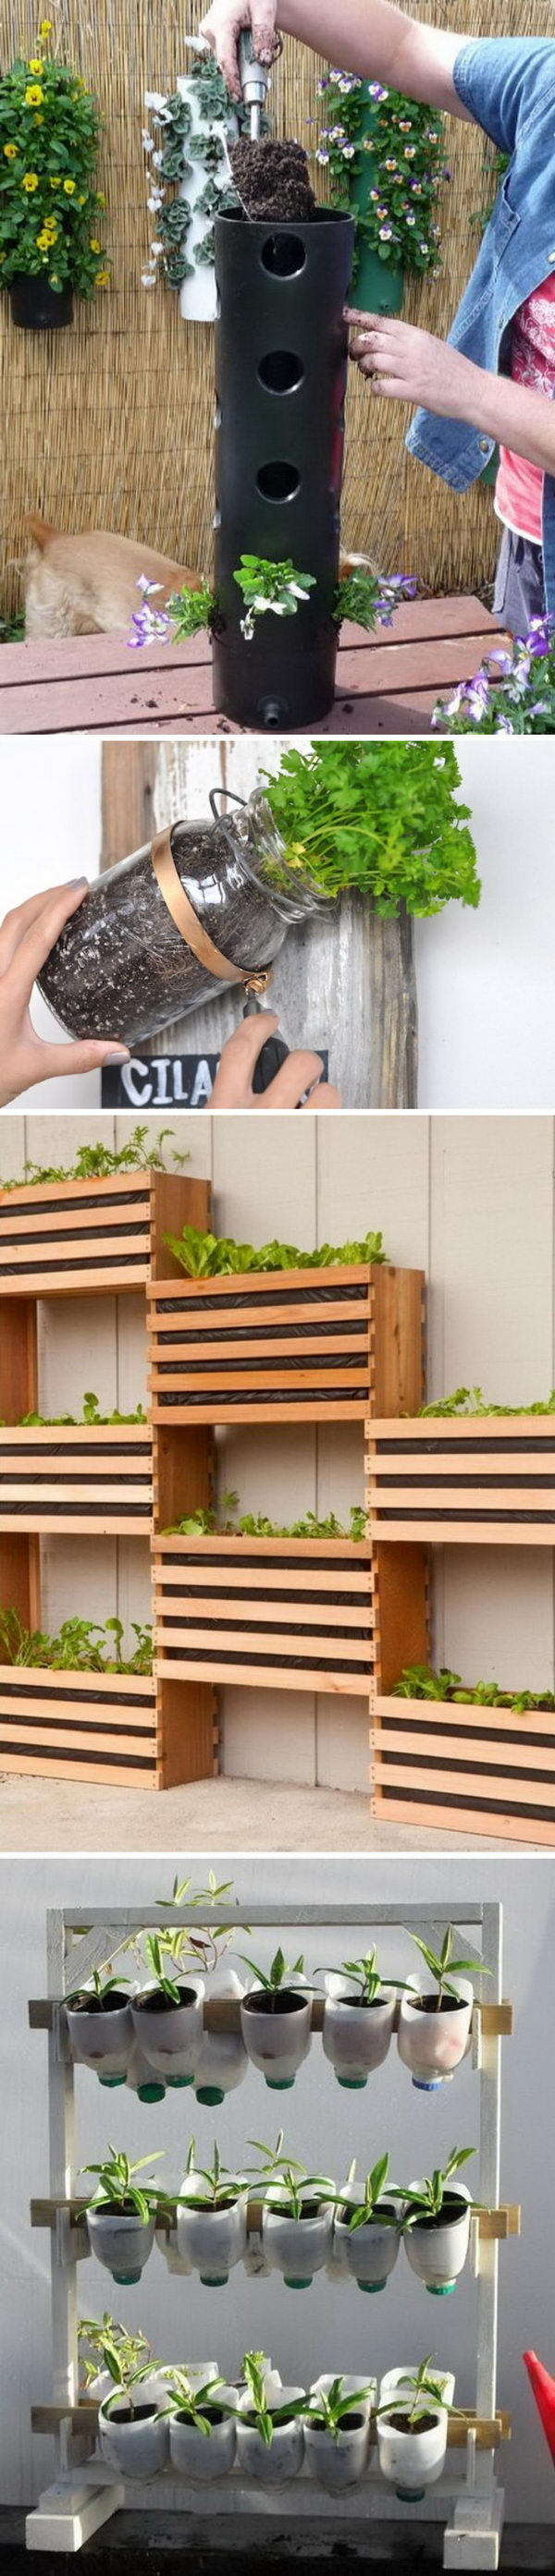 Awesome Vertical Garden Ideas.